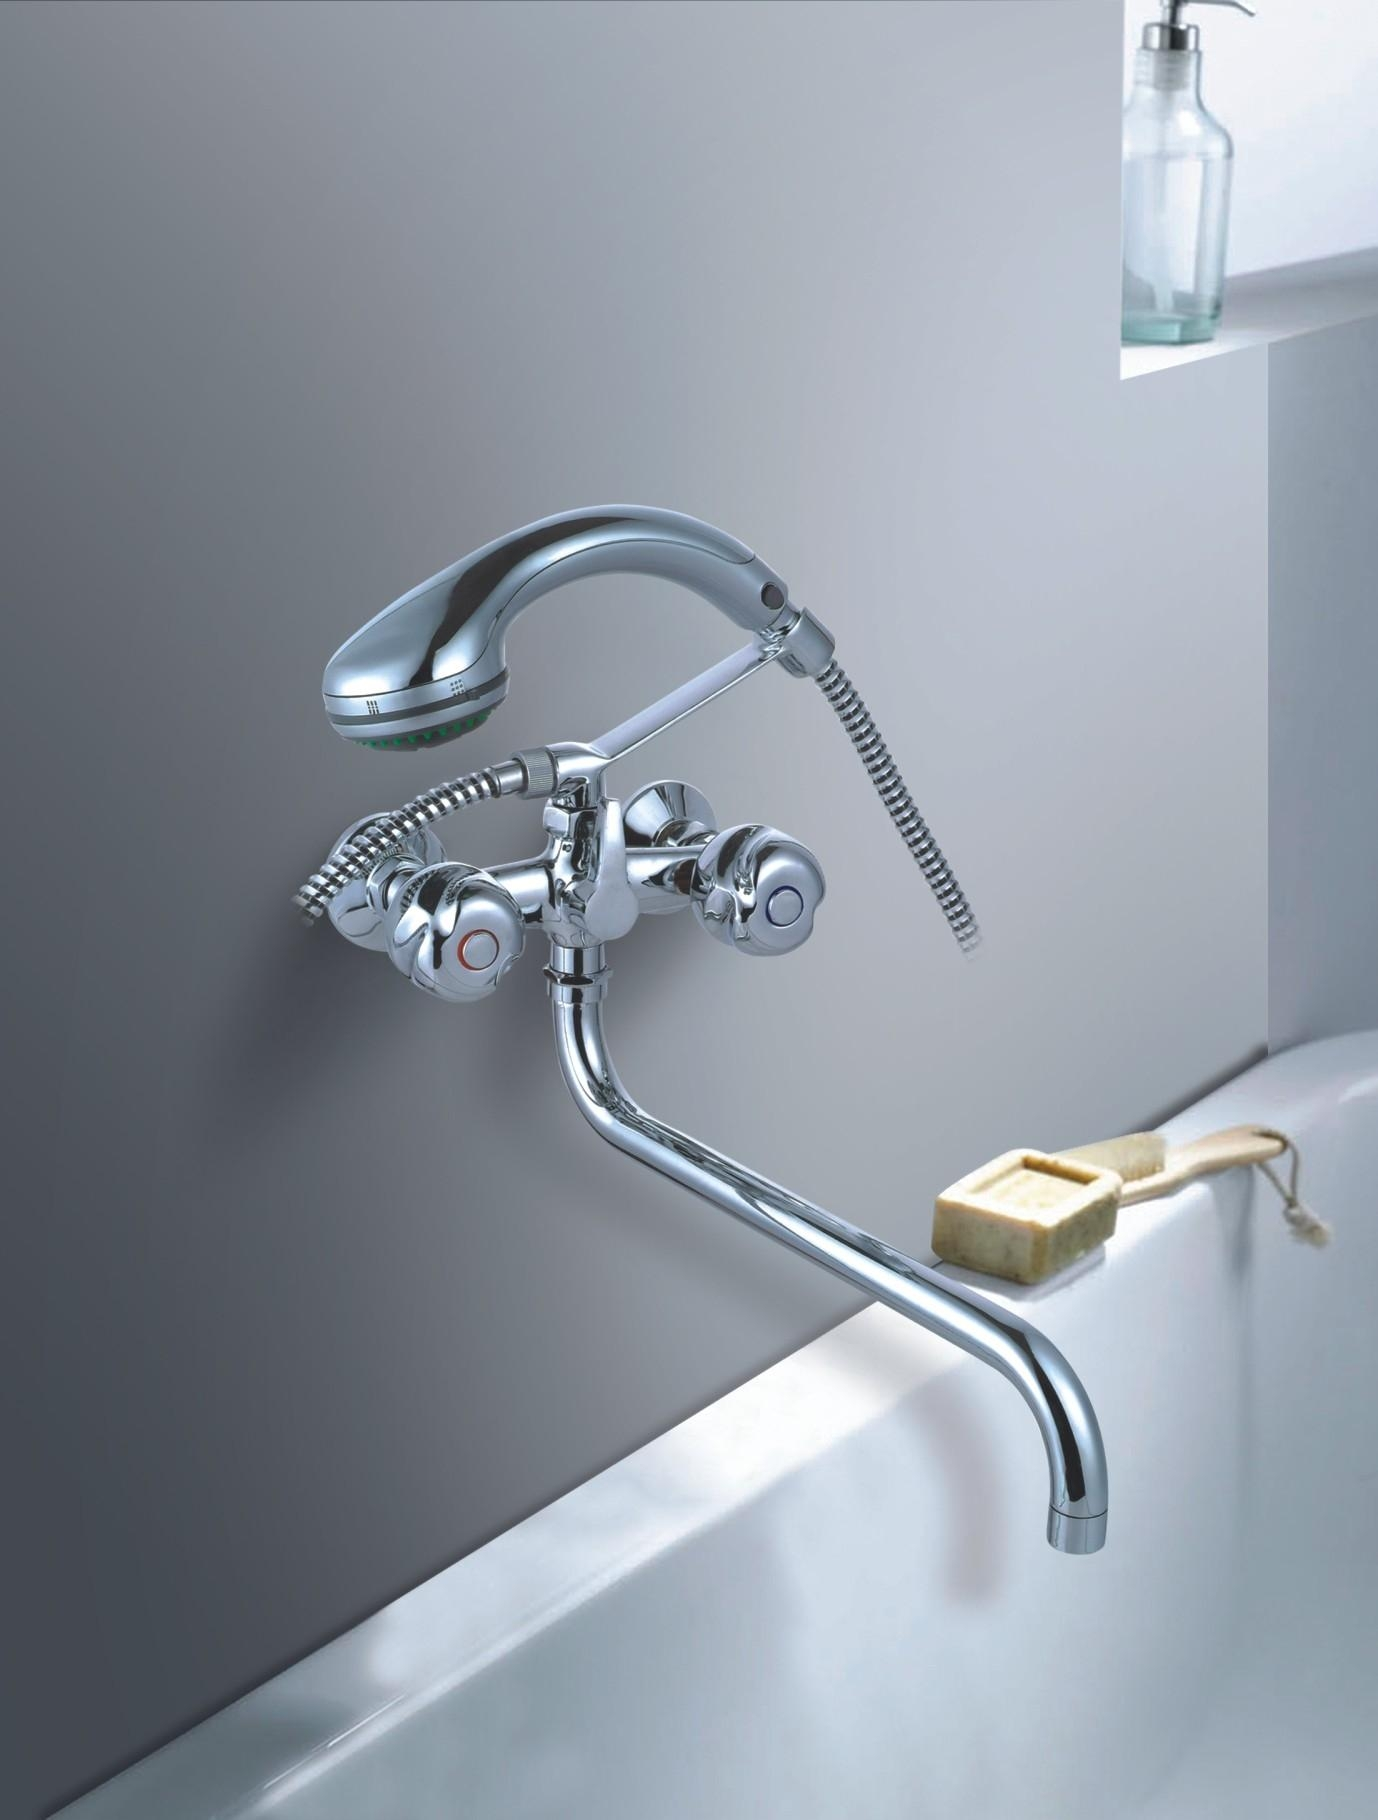 Home Decor : Shower Attachment For Bathtub Faucet Corner Kitchen With Regard To Mirror Ceiling Light (Image 12 of 20)